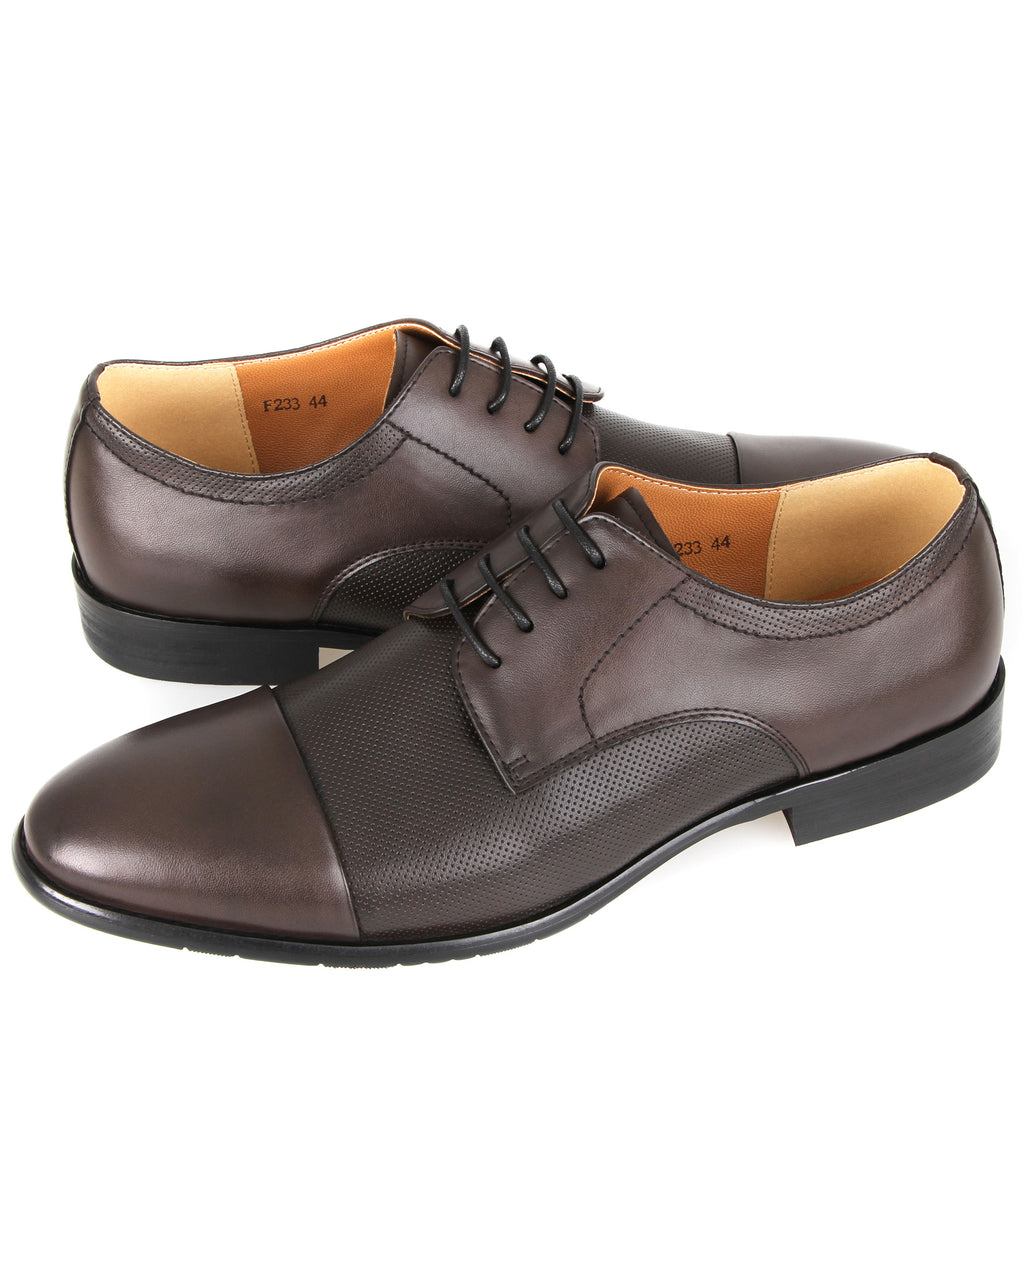 Tomaz F233 Derby Lace Up Formals (Coffee)